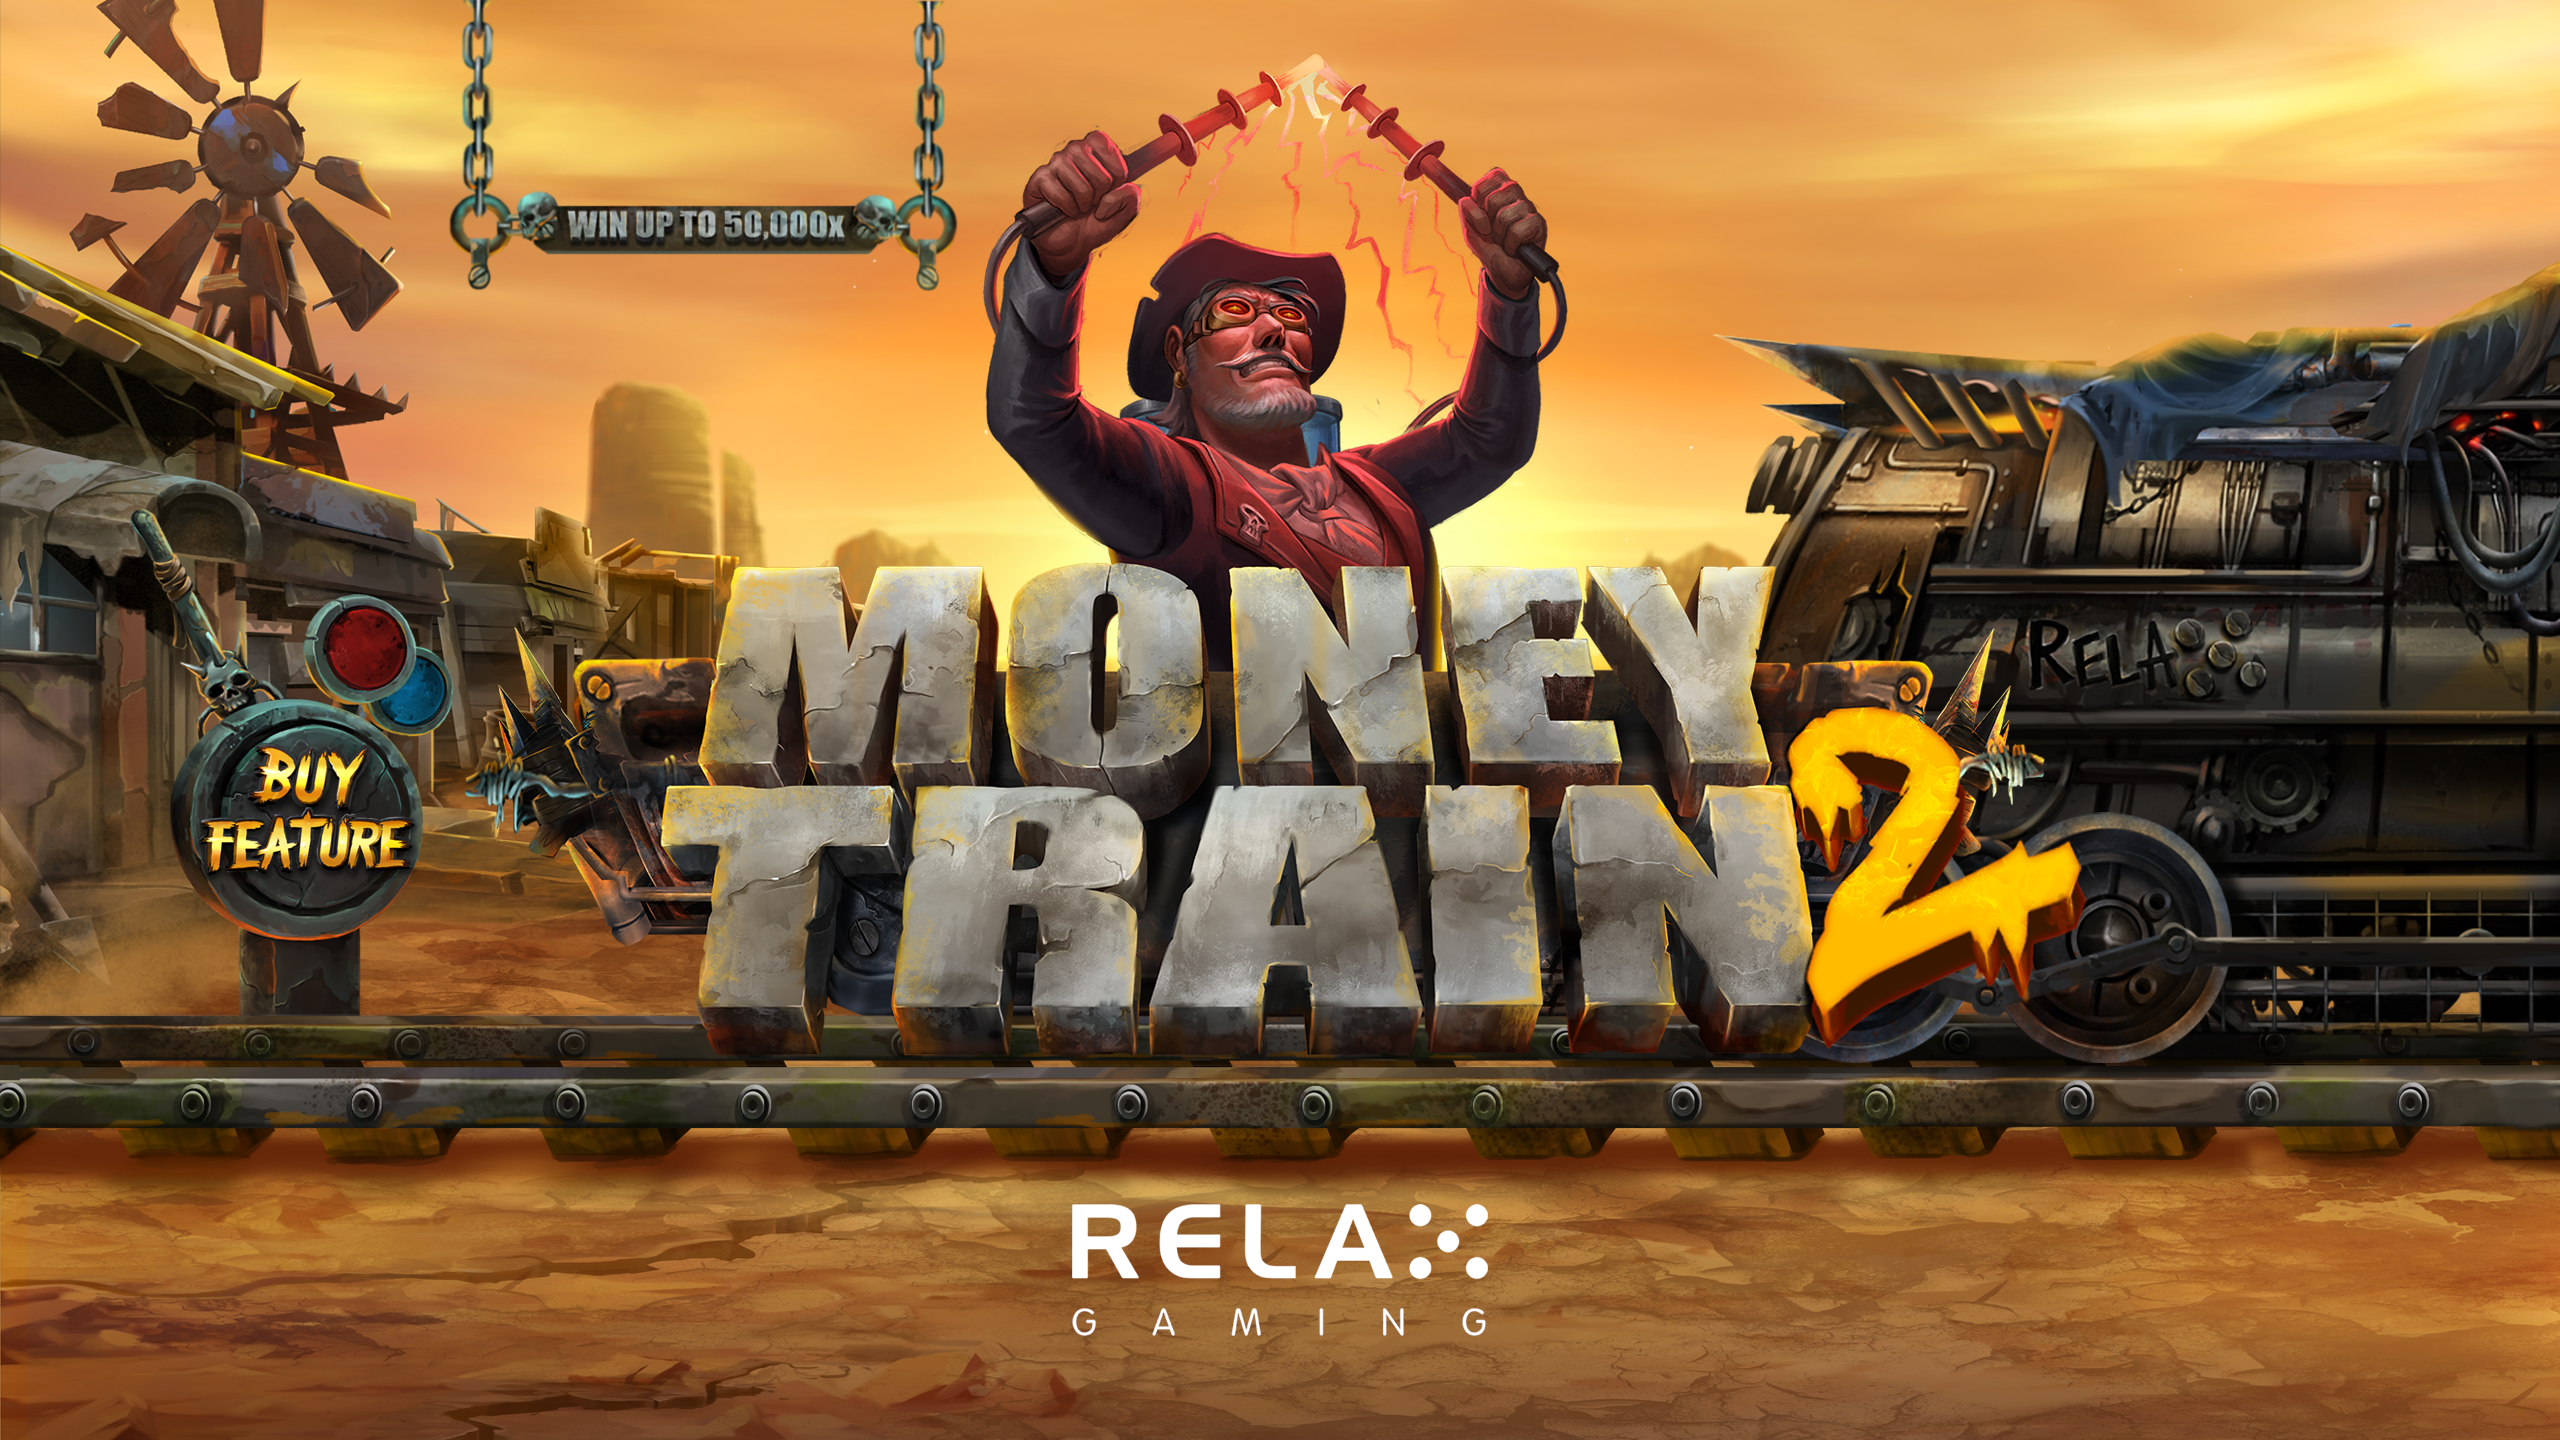 Relax Gaming: Player critique played an integral role in Money Train sequel